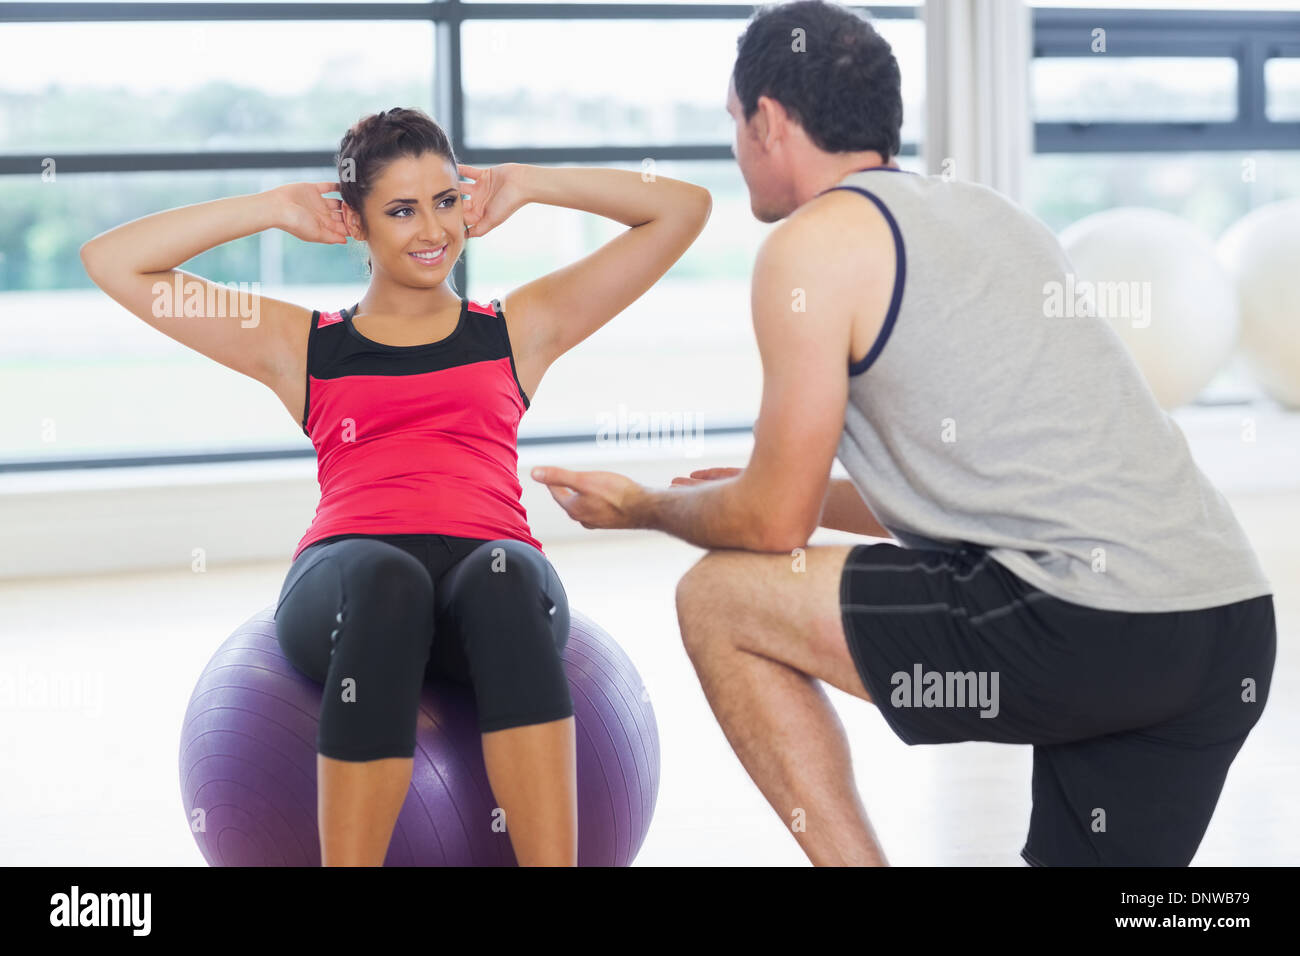 Trainer helping woman do abdominal crunches  on fitness ball Stock Photo